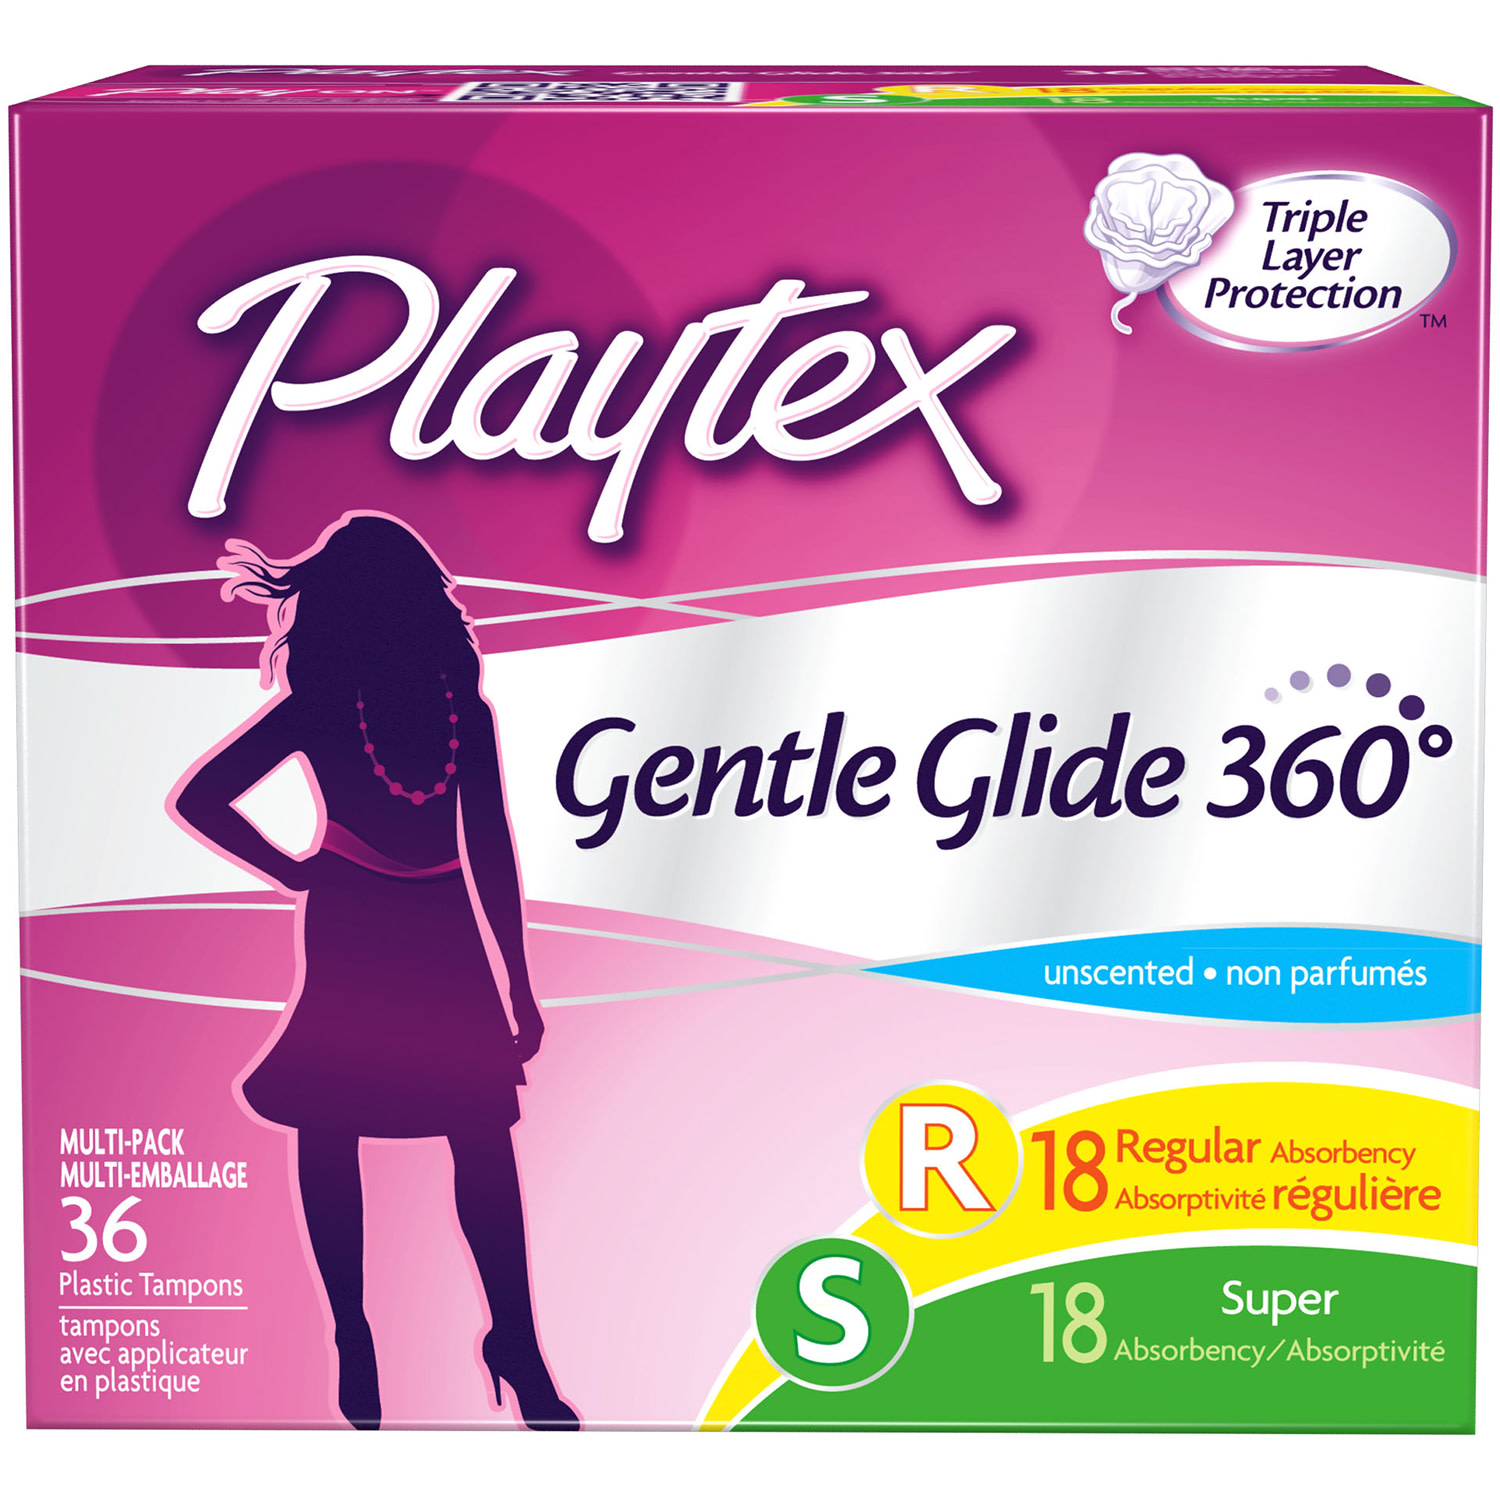 Playtex Gentle Glide Tampons Unscented Multi-Pack 18 Regular Absorbency And 18 Super Absorbency - 36 Count